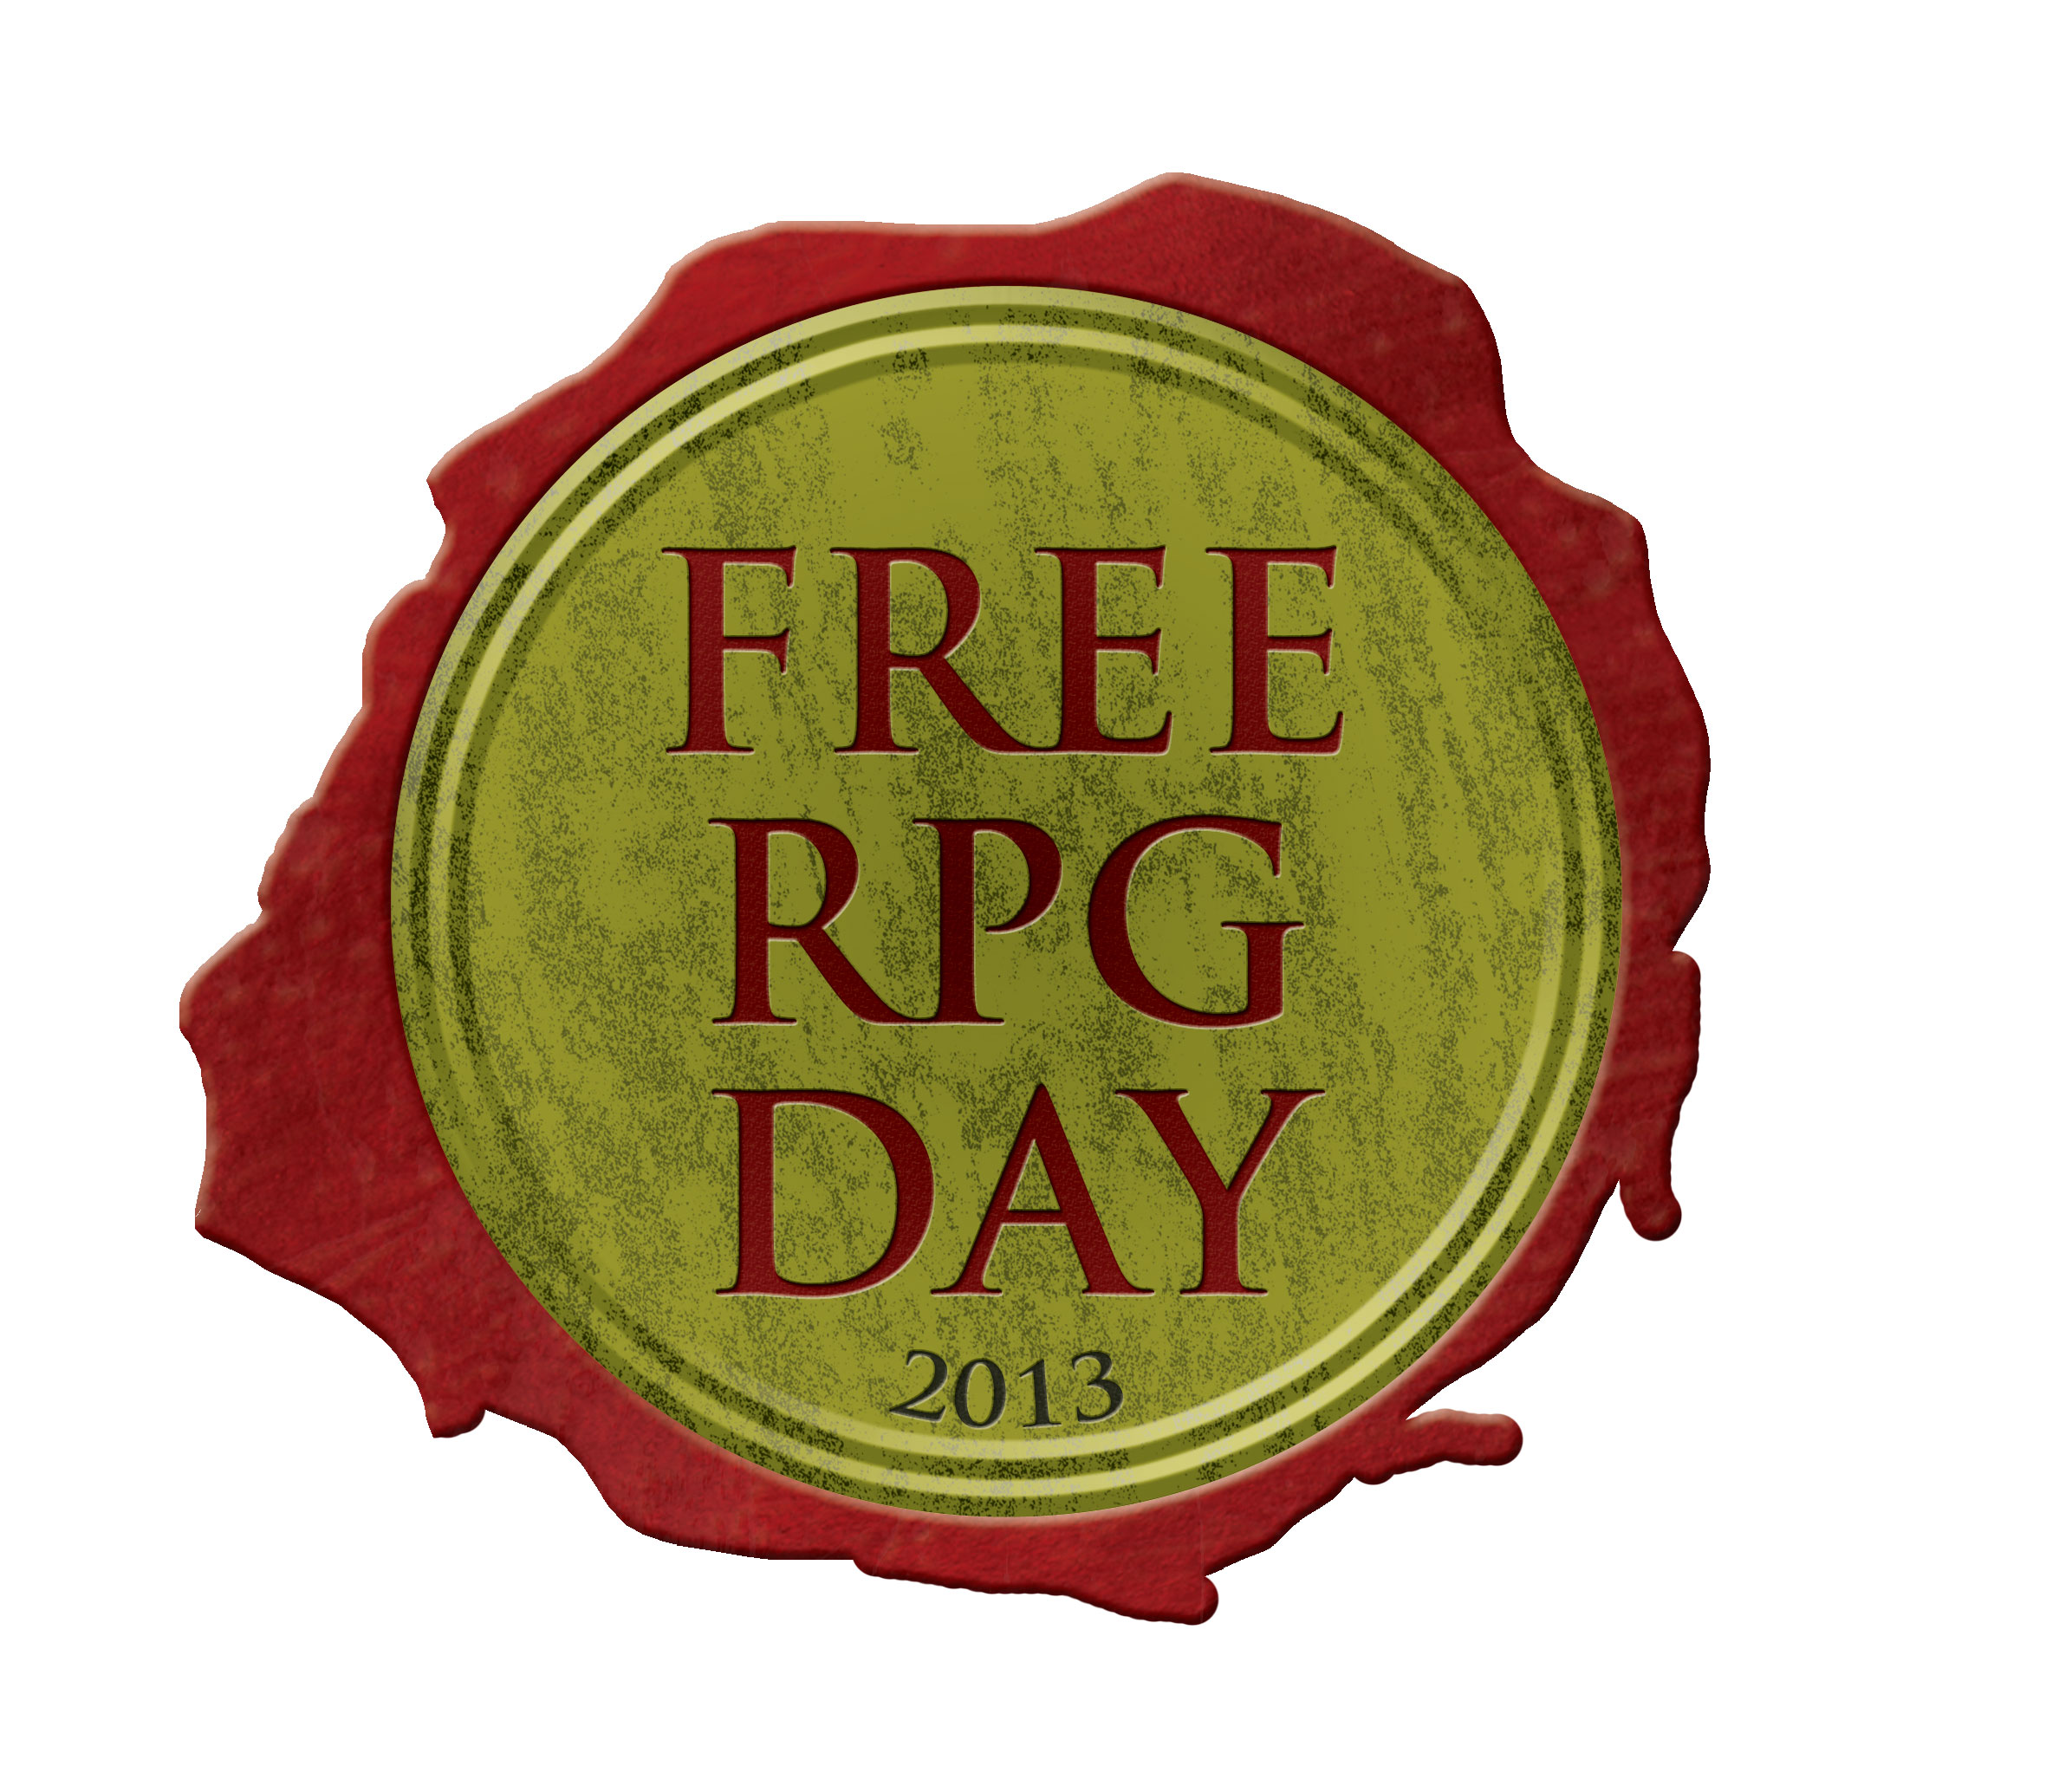 free rpg day logo 2013